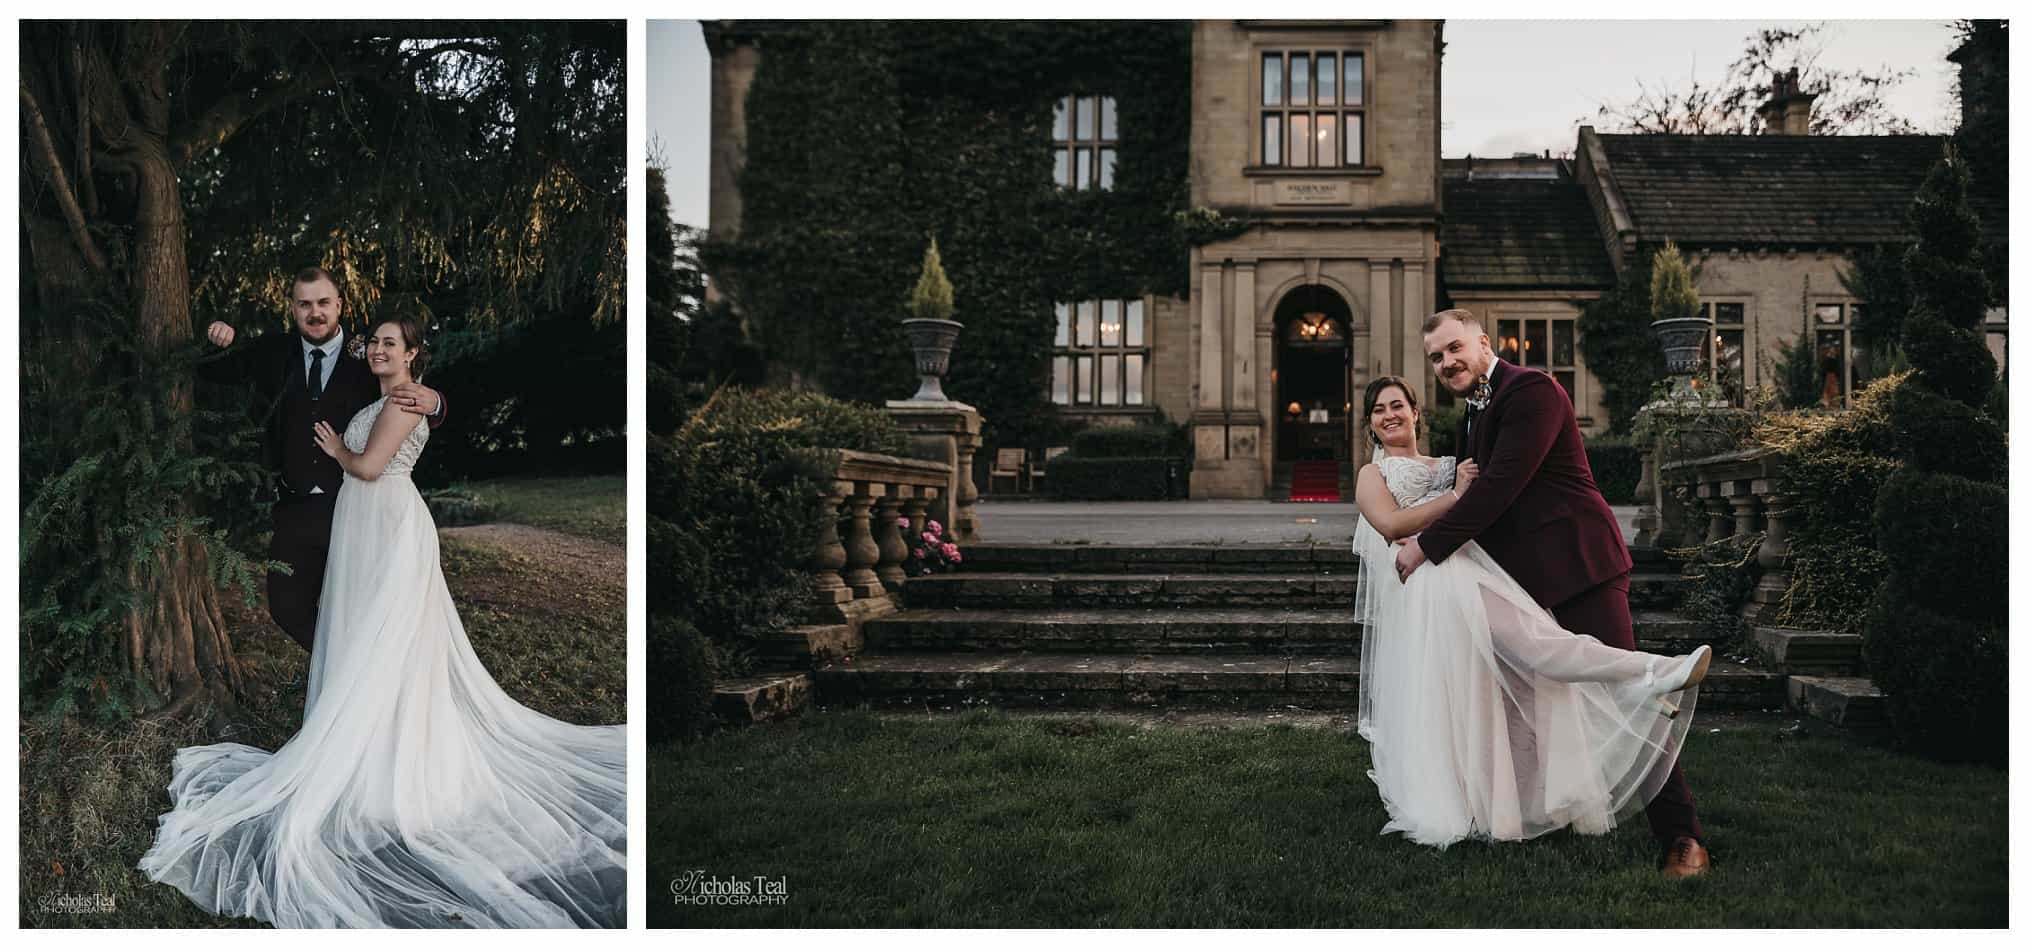 posed shot of the bride and groom in the gardens at Bagden Hall